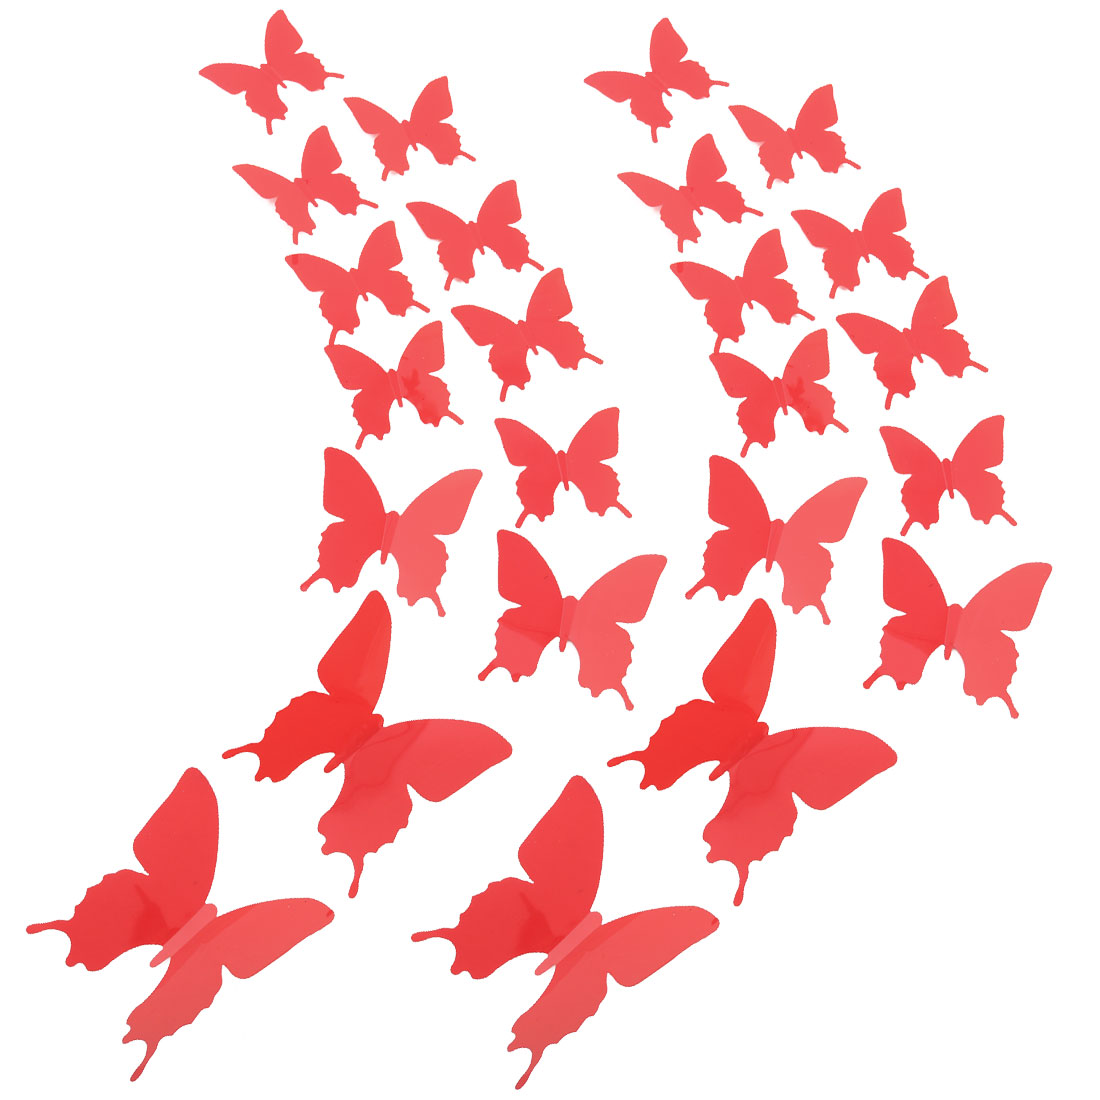 24pcs 3D Butterfly DIY Wall Sticker with Art Decals Sticker for Decoration Red